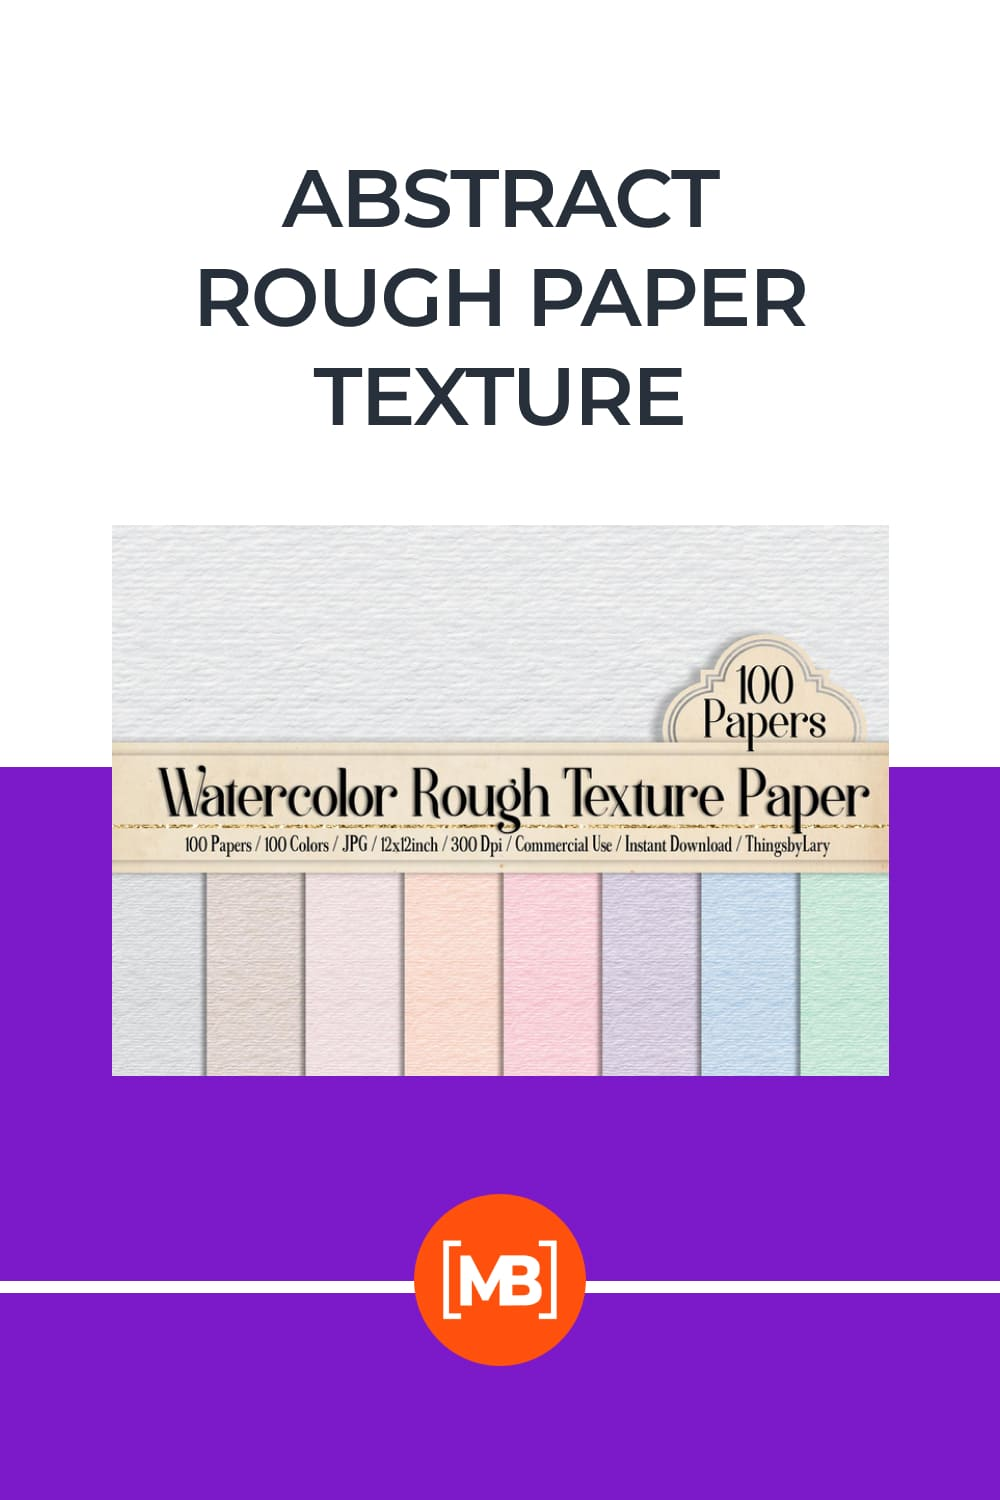 100 Watercolor Rough Texture Papers.